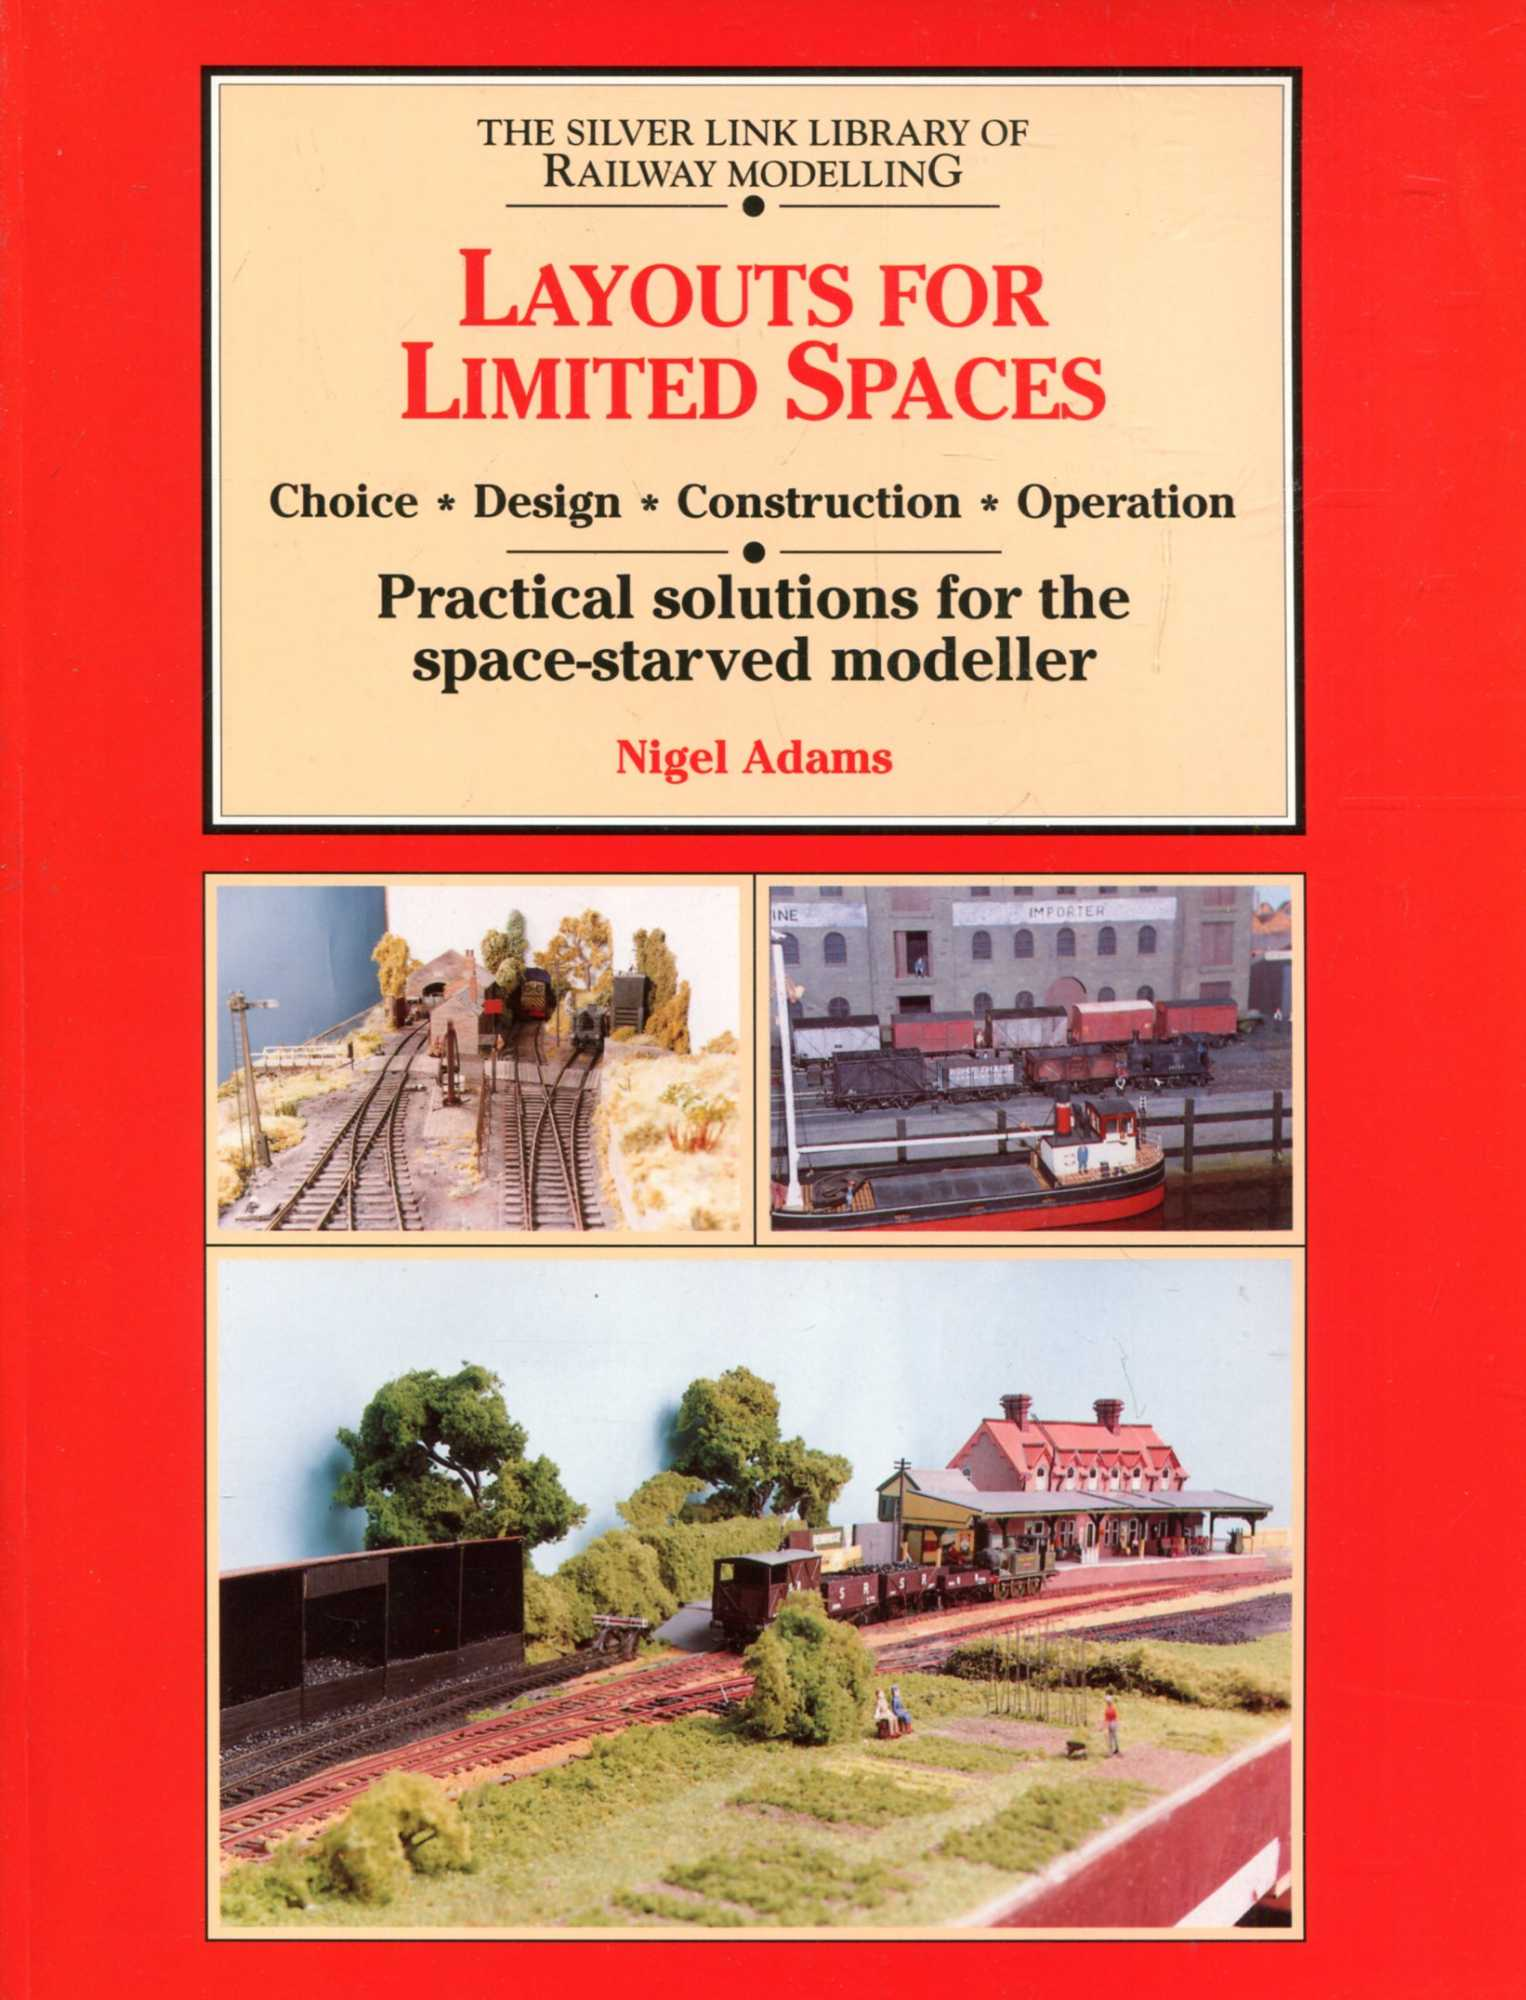 Image for Layouts for Limited Space : Choice, Design, Construction, Operation - Practical Solutions for the Space-Starved Modeller (Library of Railway Modelling)